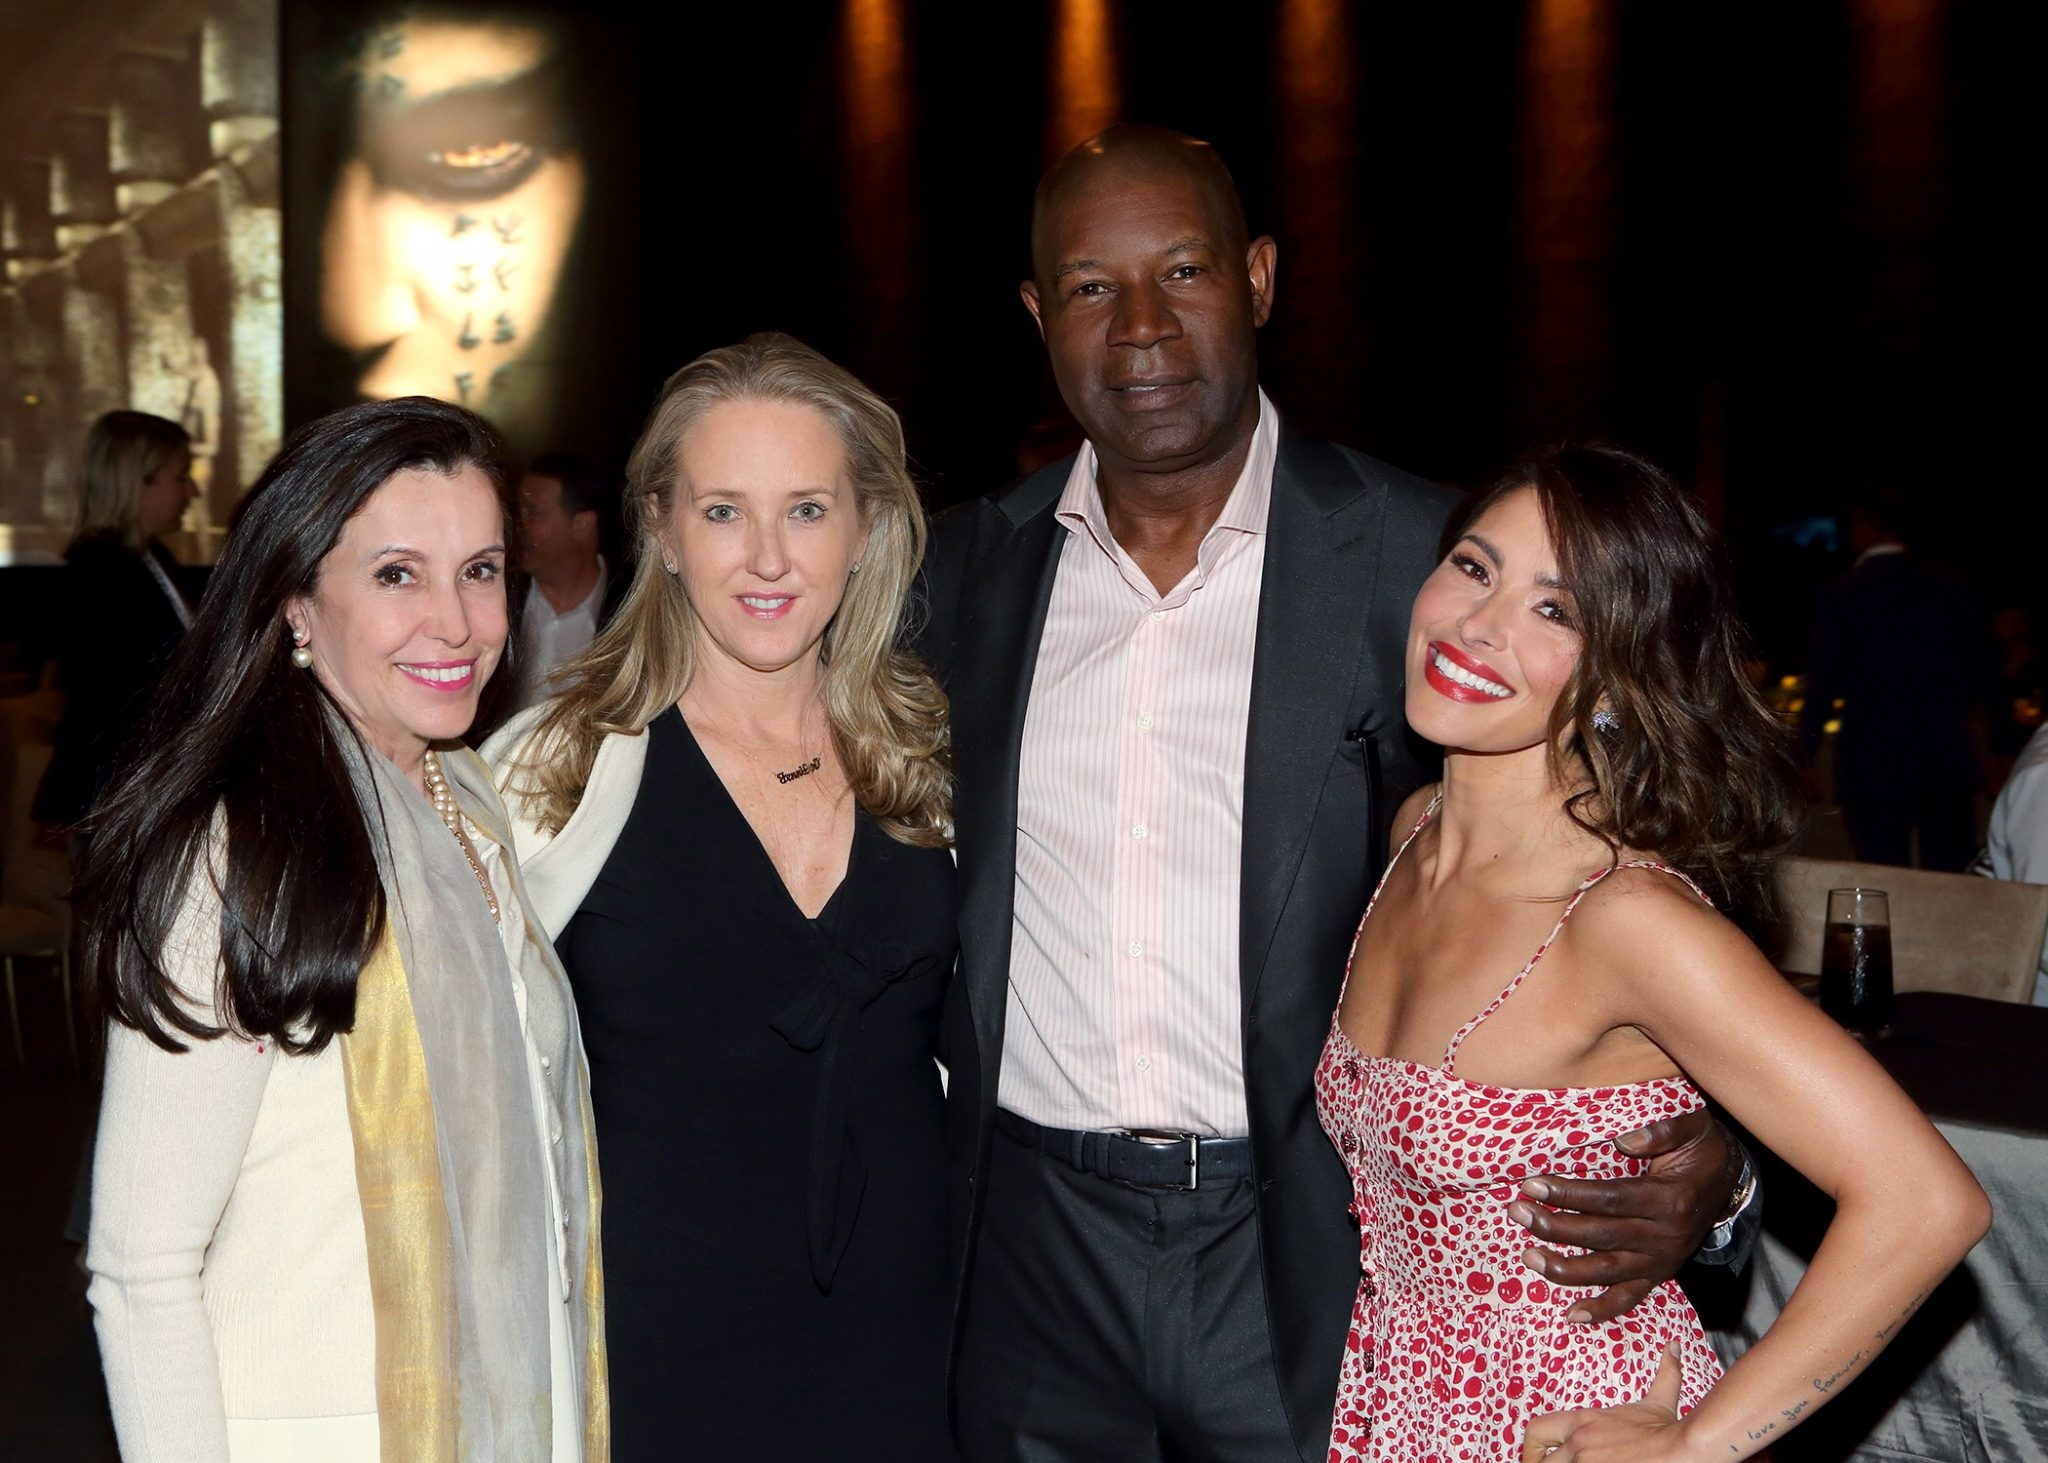 (L-R) NBCUniversal International Distribution & Networks president Belinda Menendez; NBC Entertainment president Jennifer Salke; Dennis Haysbert (Reverie) and Sarah Shahi (Reverie) attend NBCU's LA Screenings luncheon on the Universal lot on Thursday, May 25 (Craig T. Mathew/Mathew Imaging)